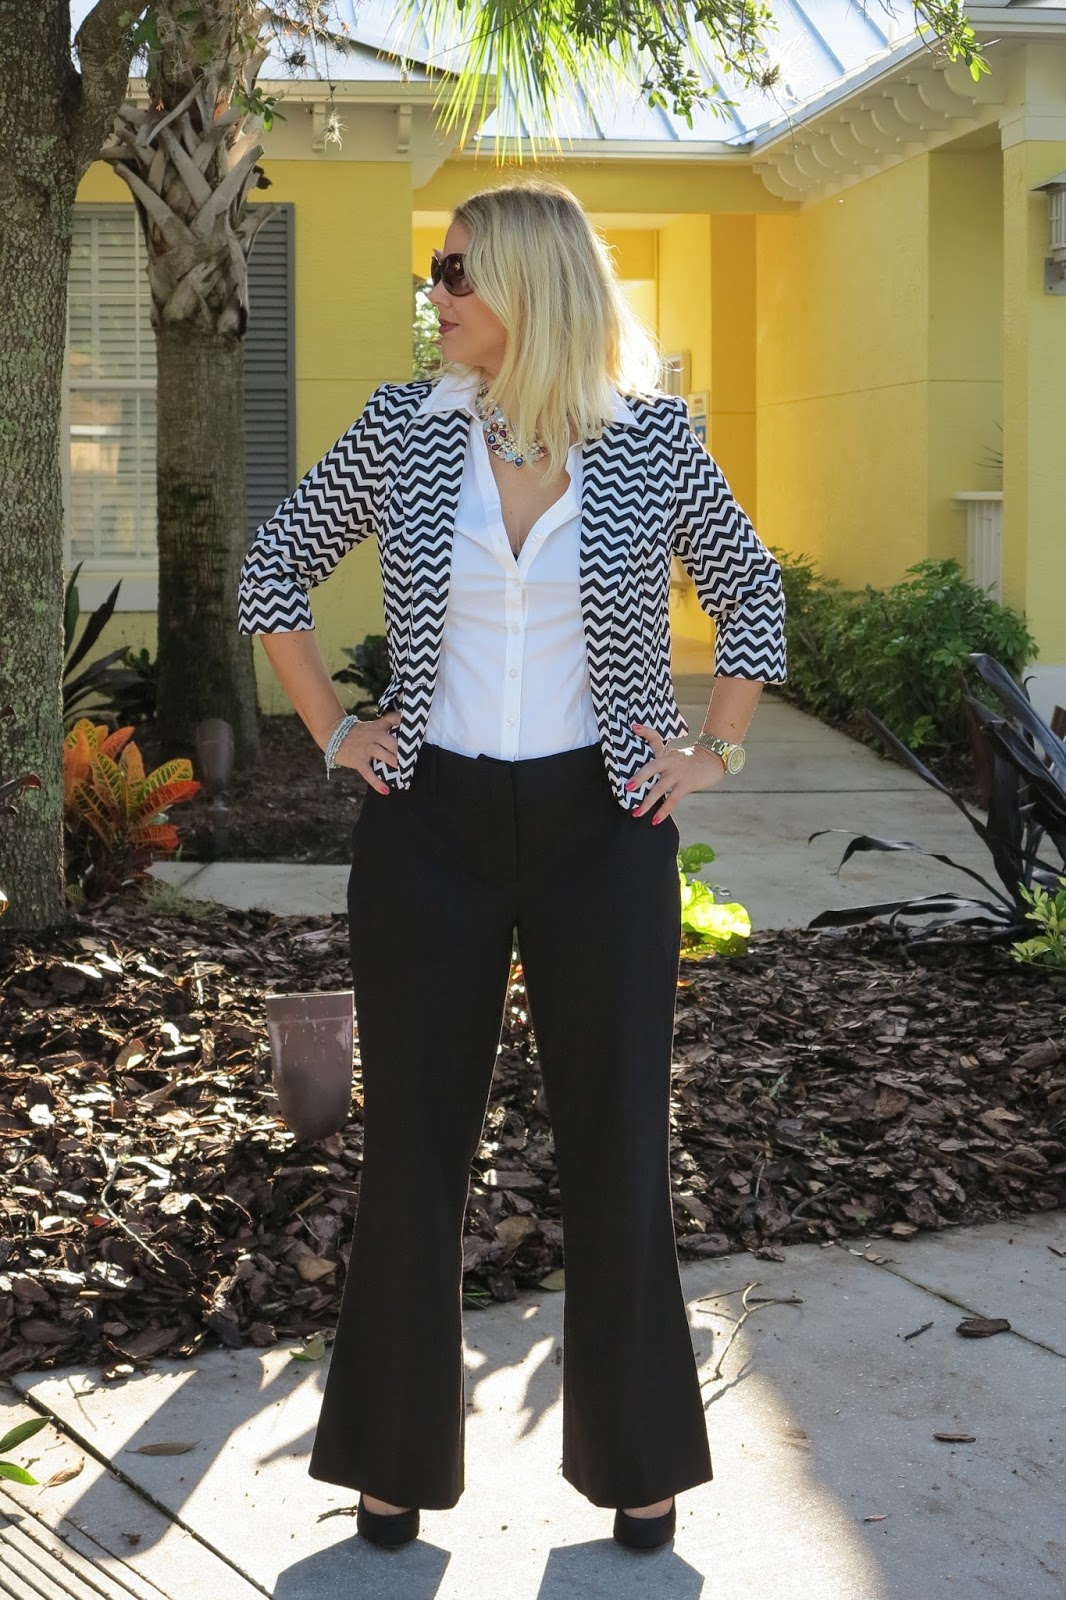 FASHION OVER 40: CAN YOU WEAR SHOULDER PADS IN A BLAZER?